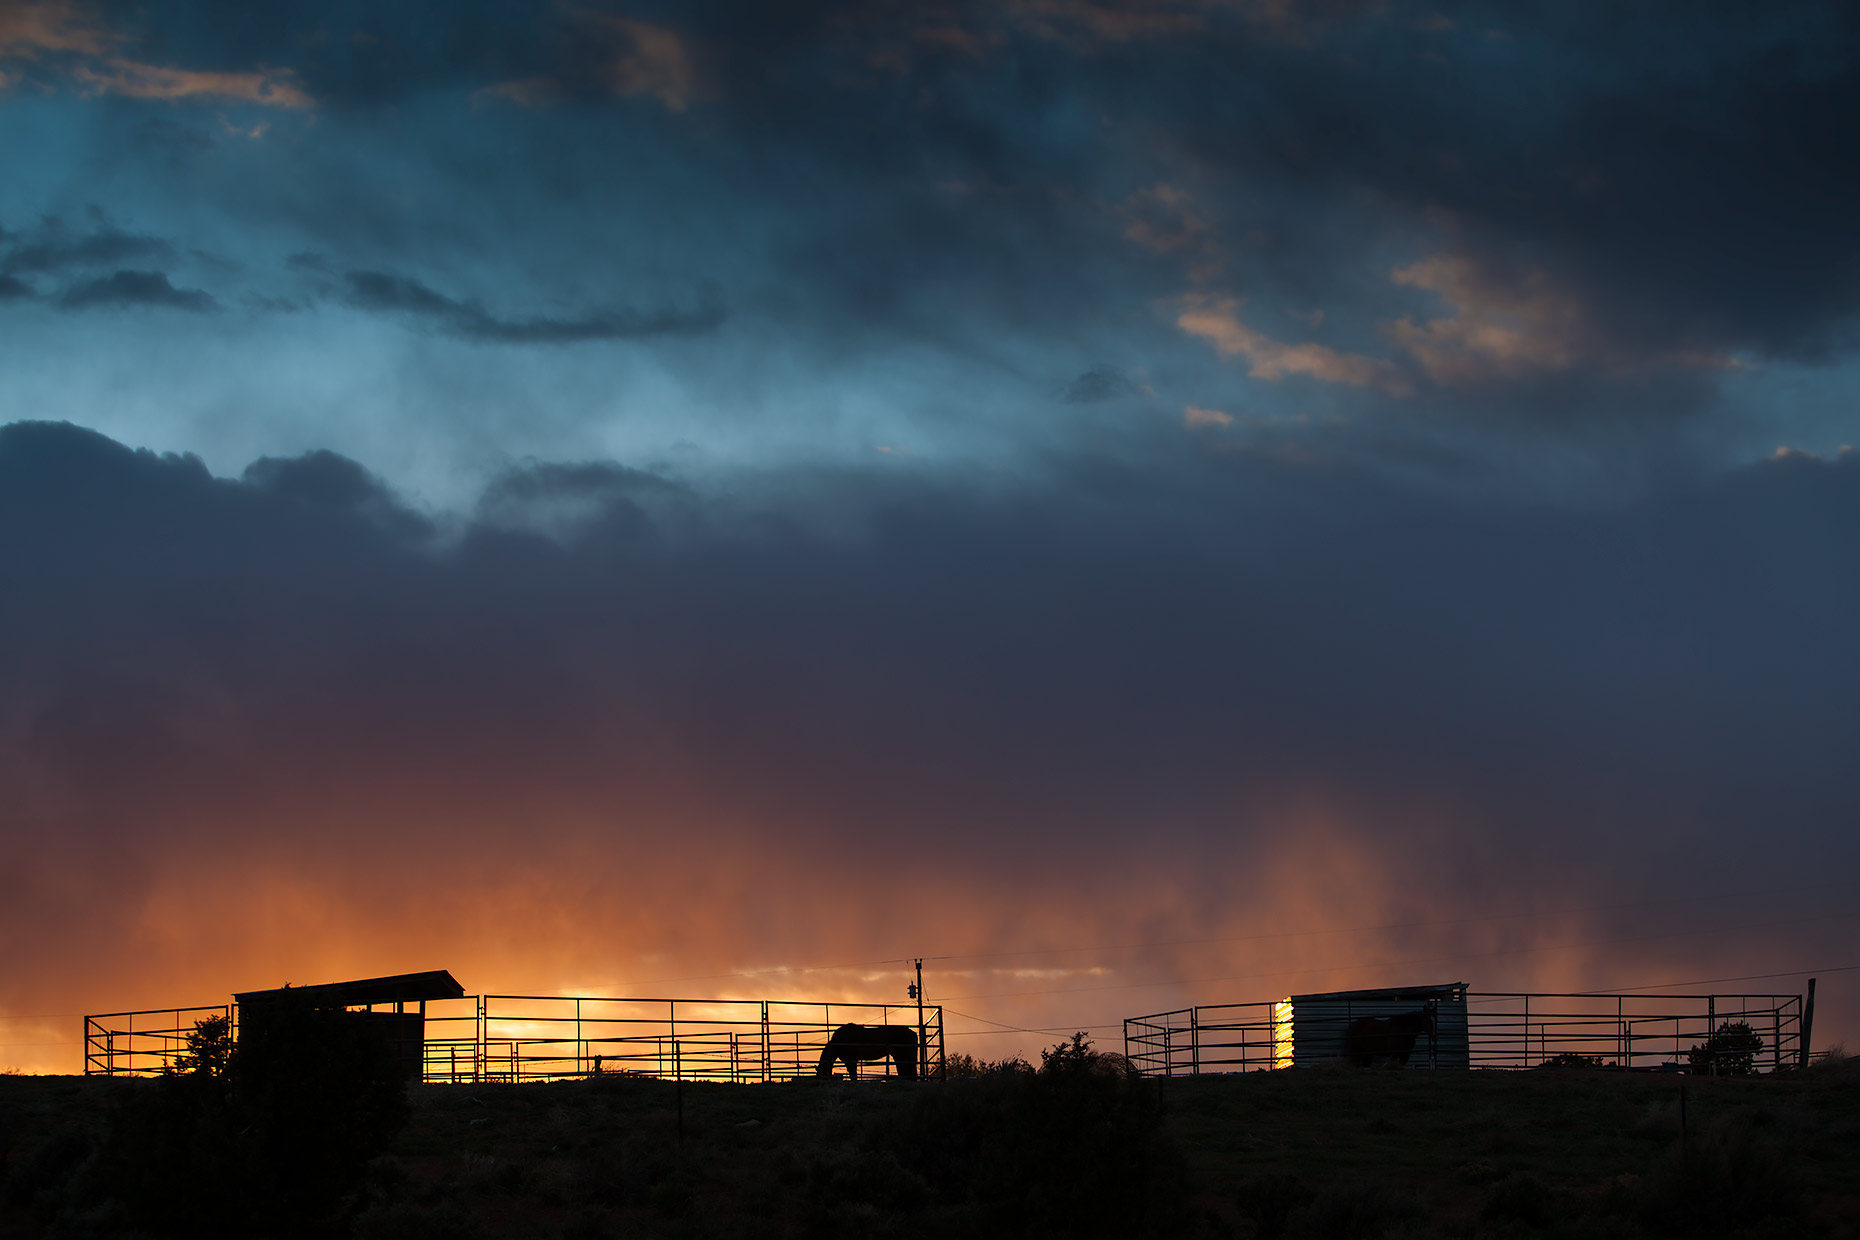 Silhouette of a horse in corral at sunset |  Scott Gable industrial photographer